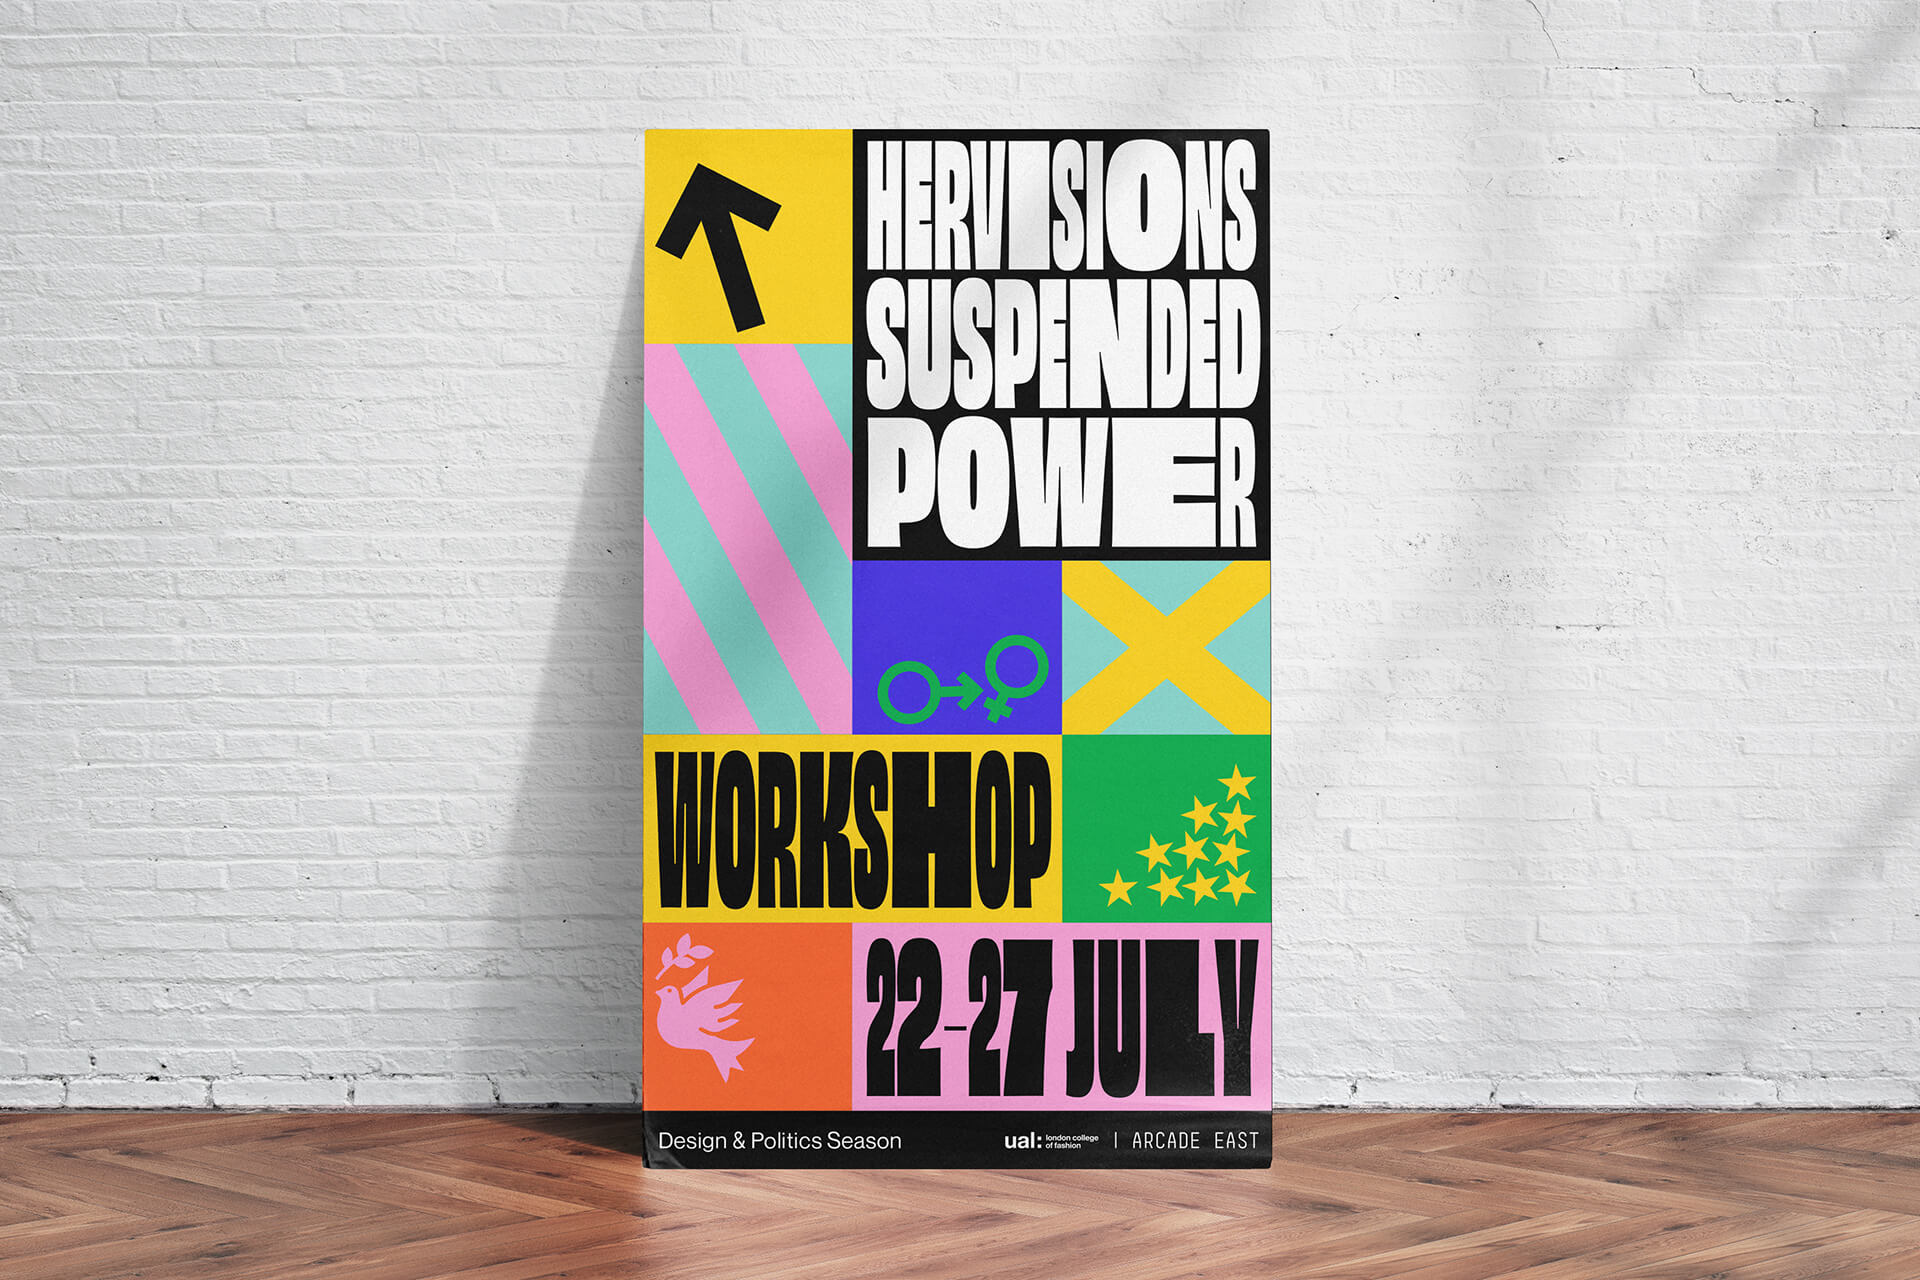 LCF_Design-Politics-Season_Signage